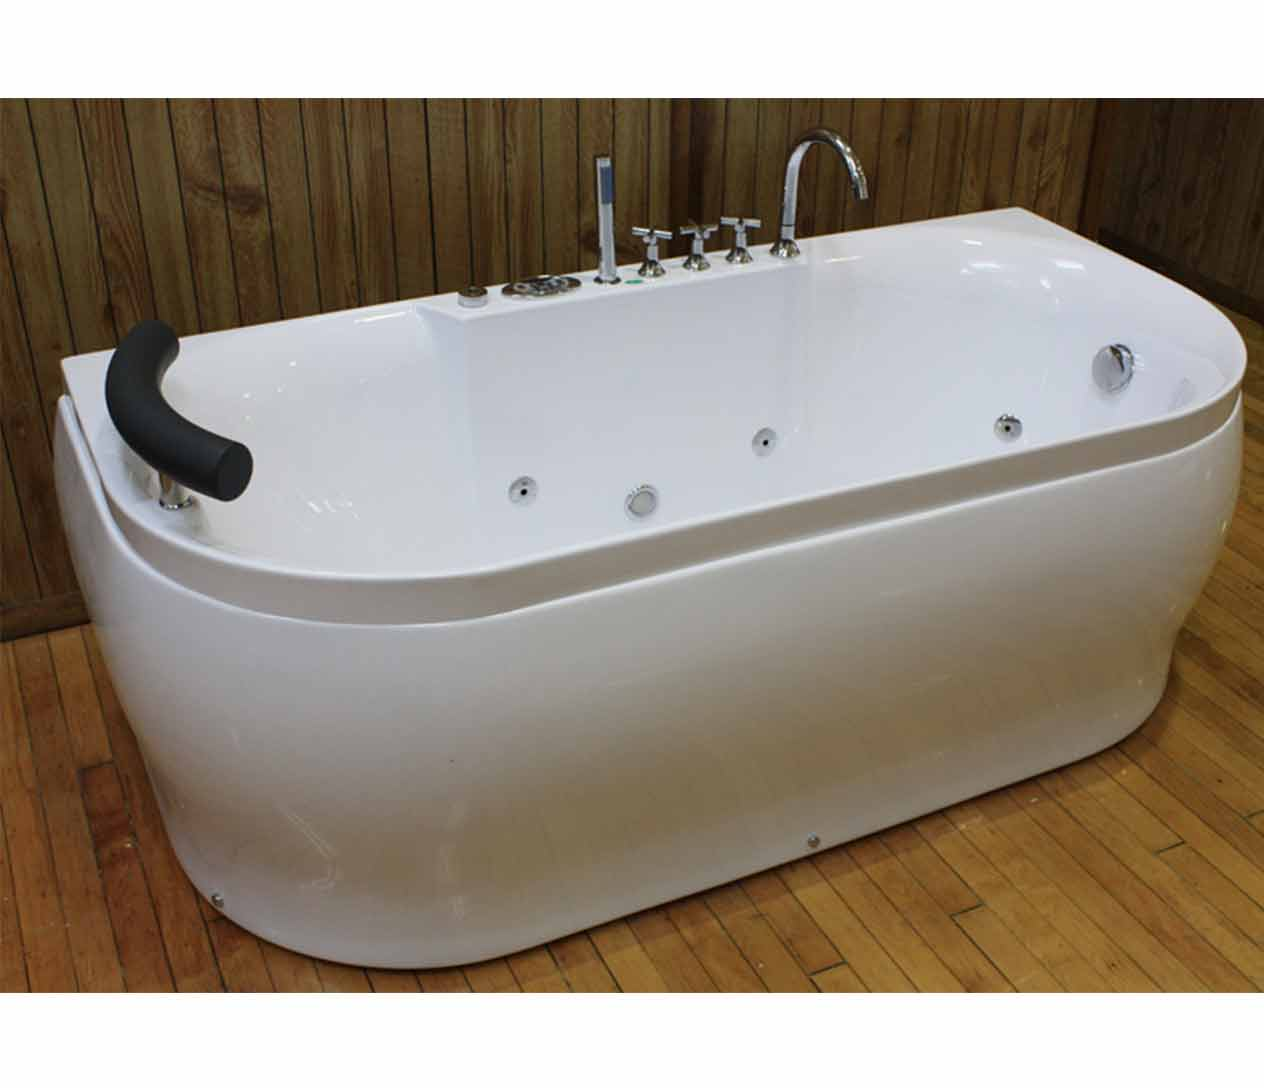 Ow 9043 Jetted Tub Luxury Spas Inc